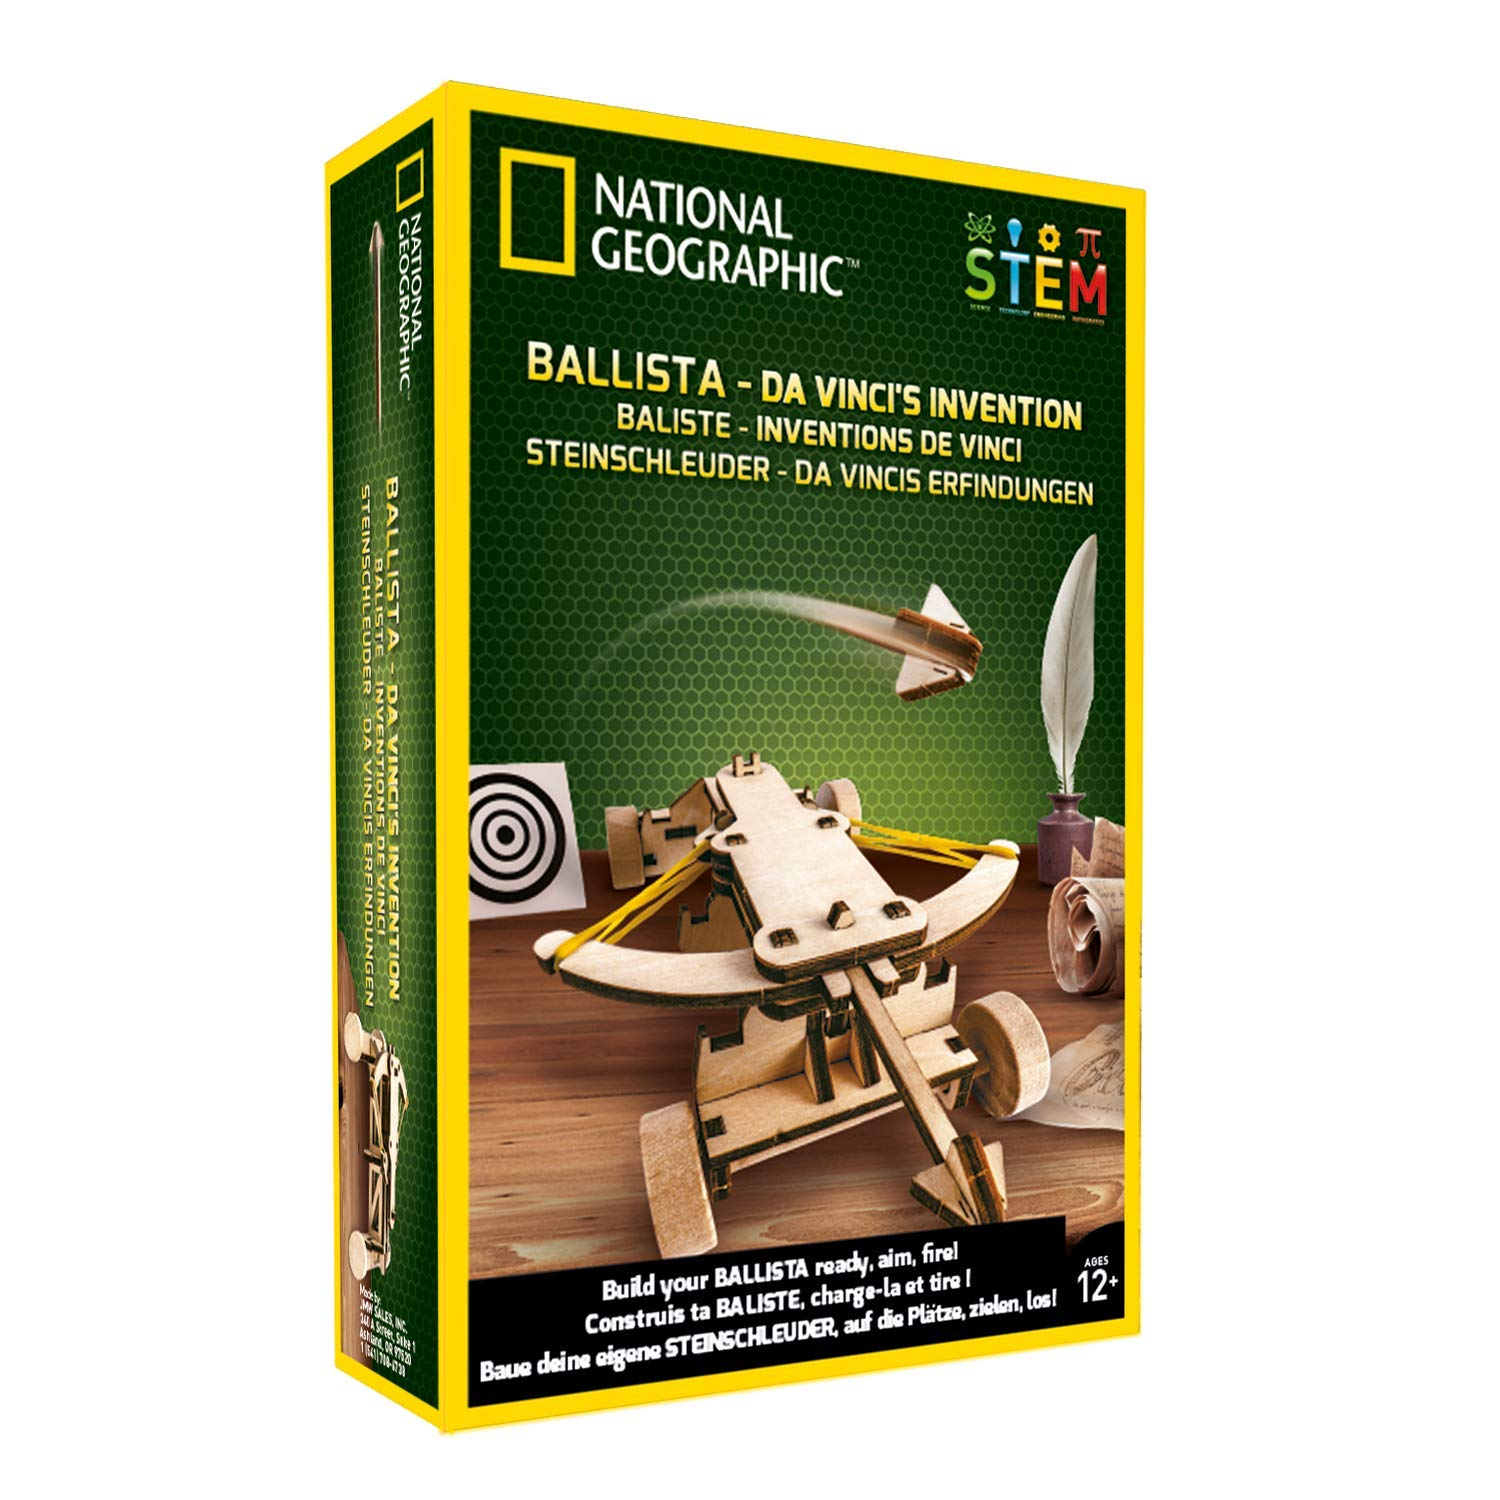 NATIONAL GEOGRAPHIC Da Vinci's DIY Science & Engineering Construction Kit- Build Your Own Wooden Model of The Original Ballista